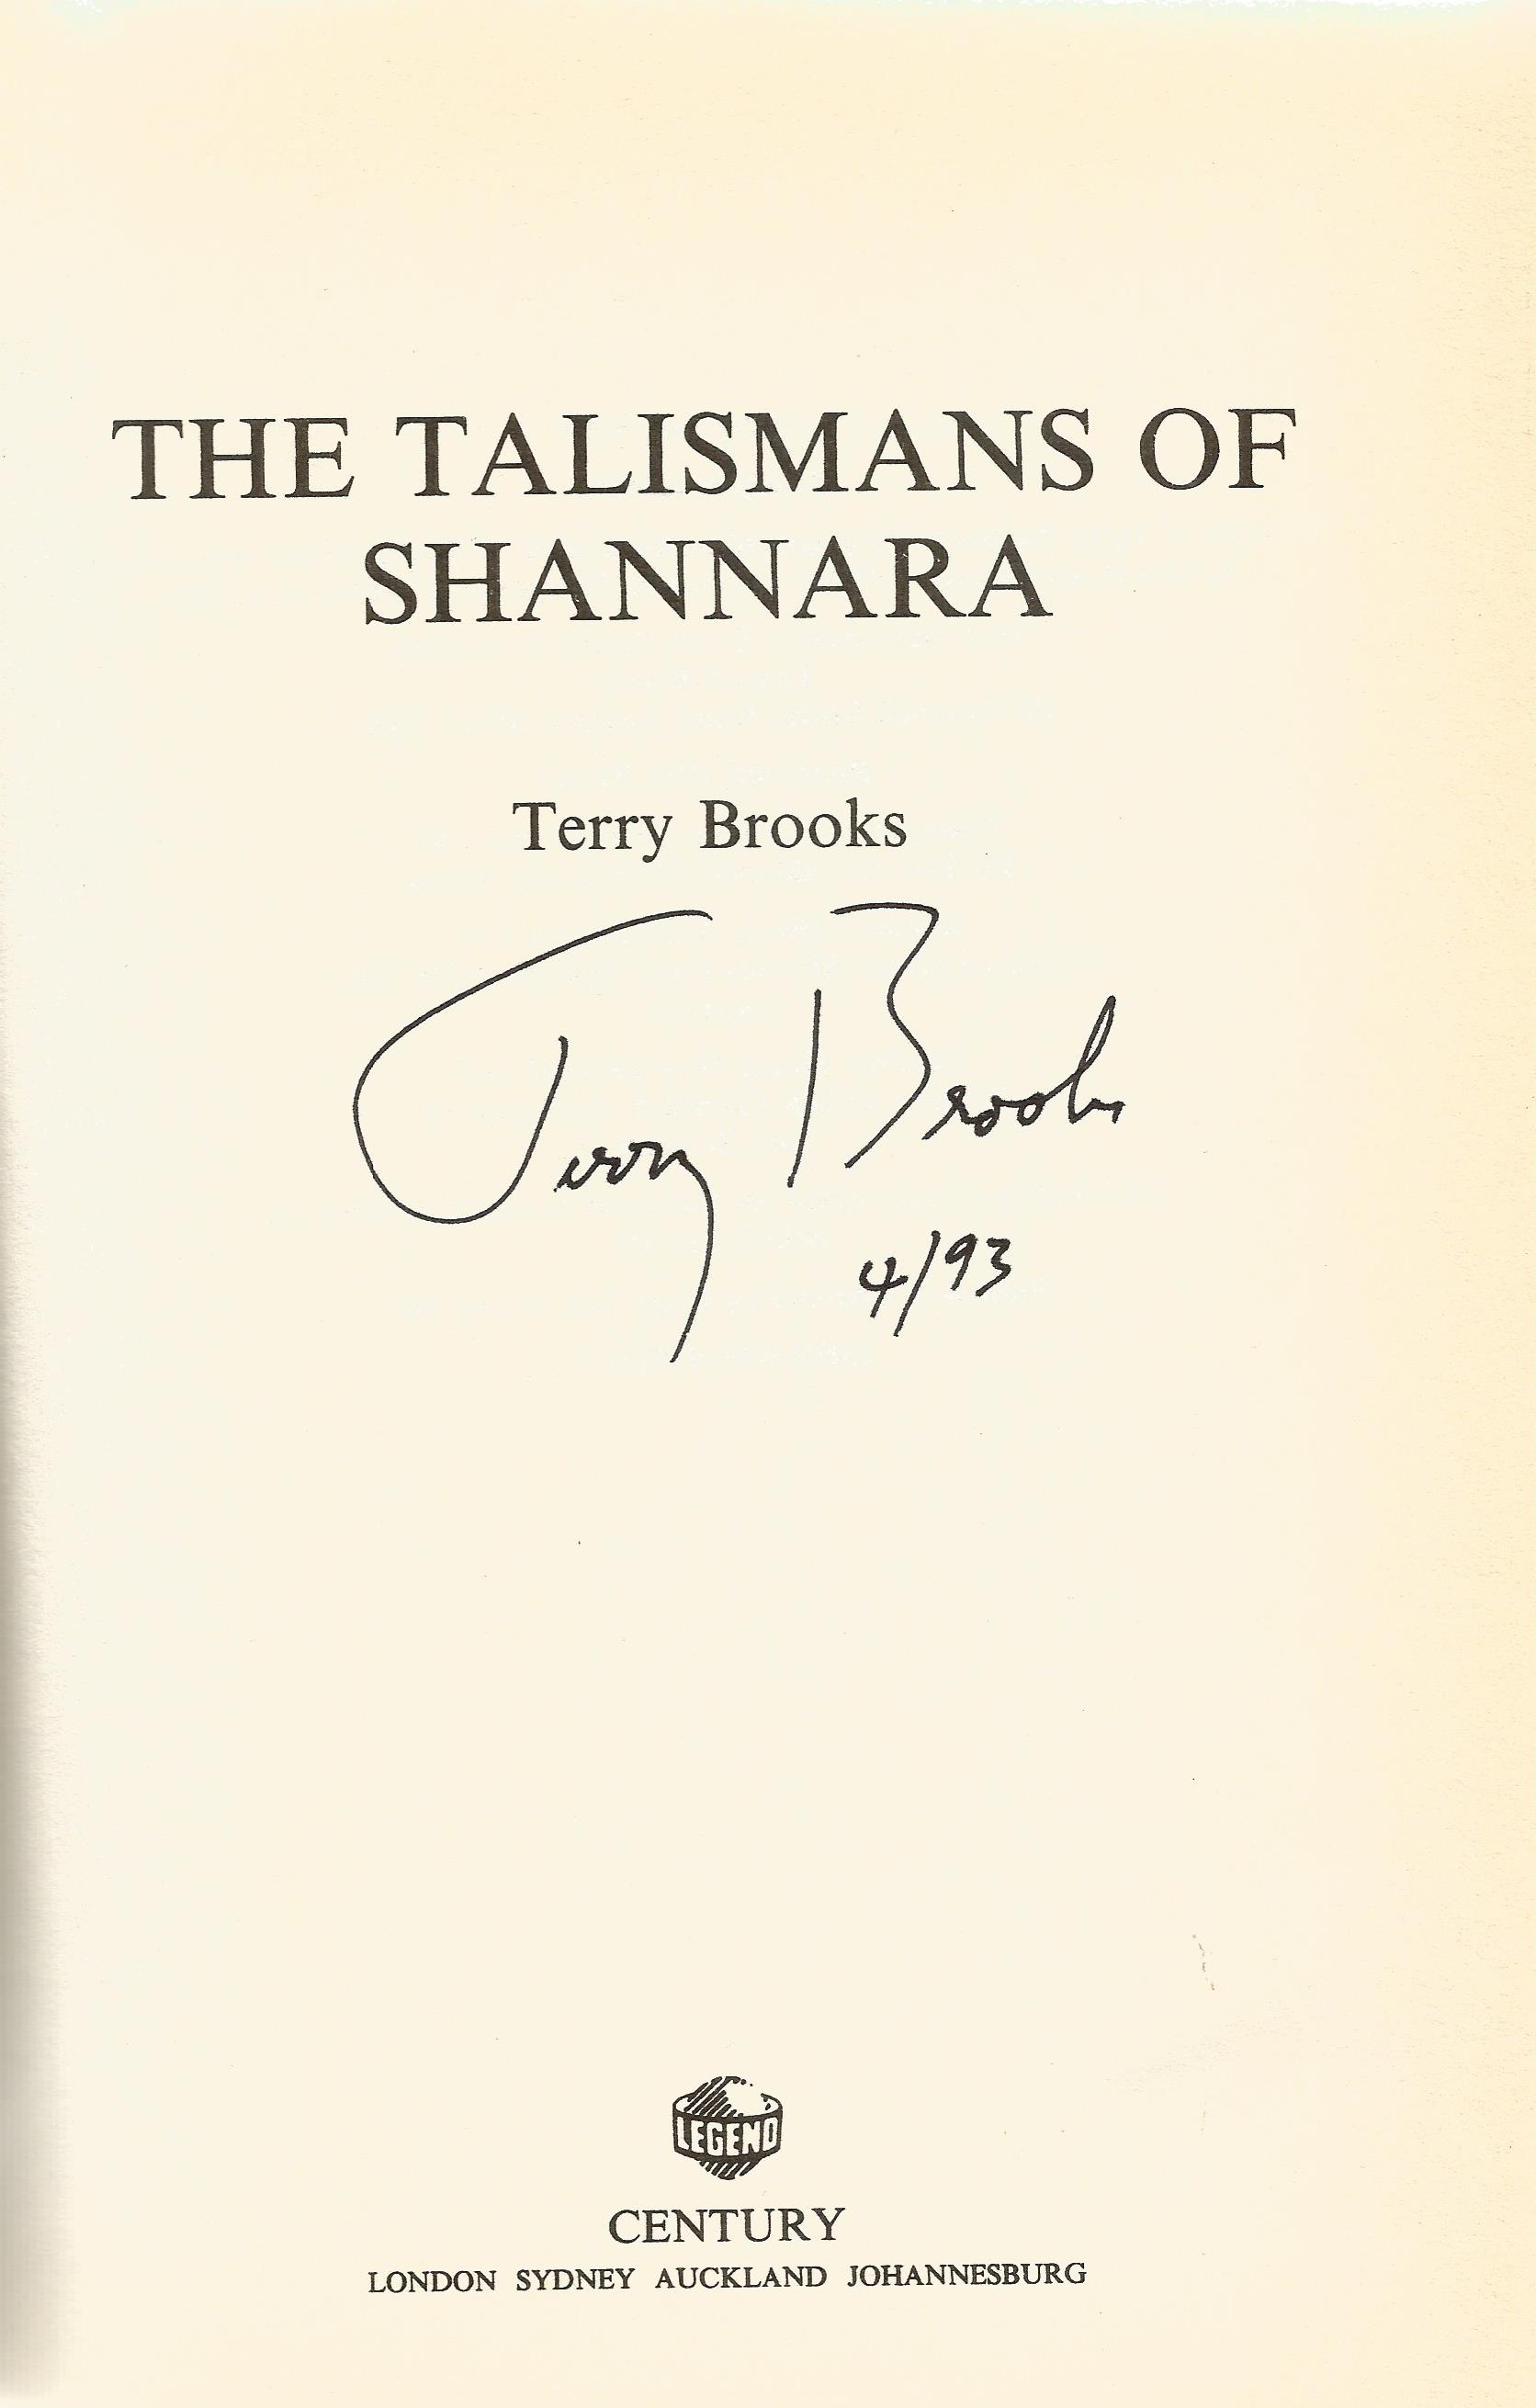 Terry Brooks Hardback Book The Talismans of Shannara signed by the Author on the Title Page and - Image 2 of 2